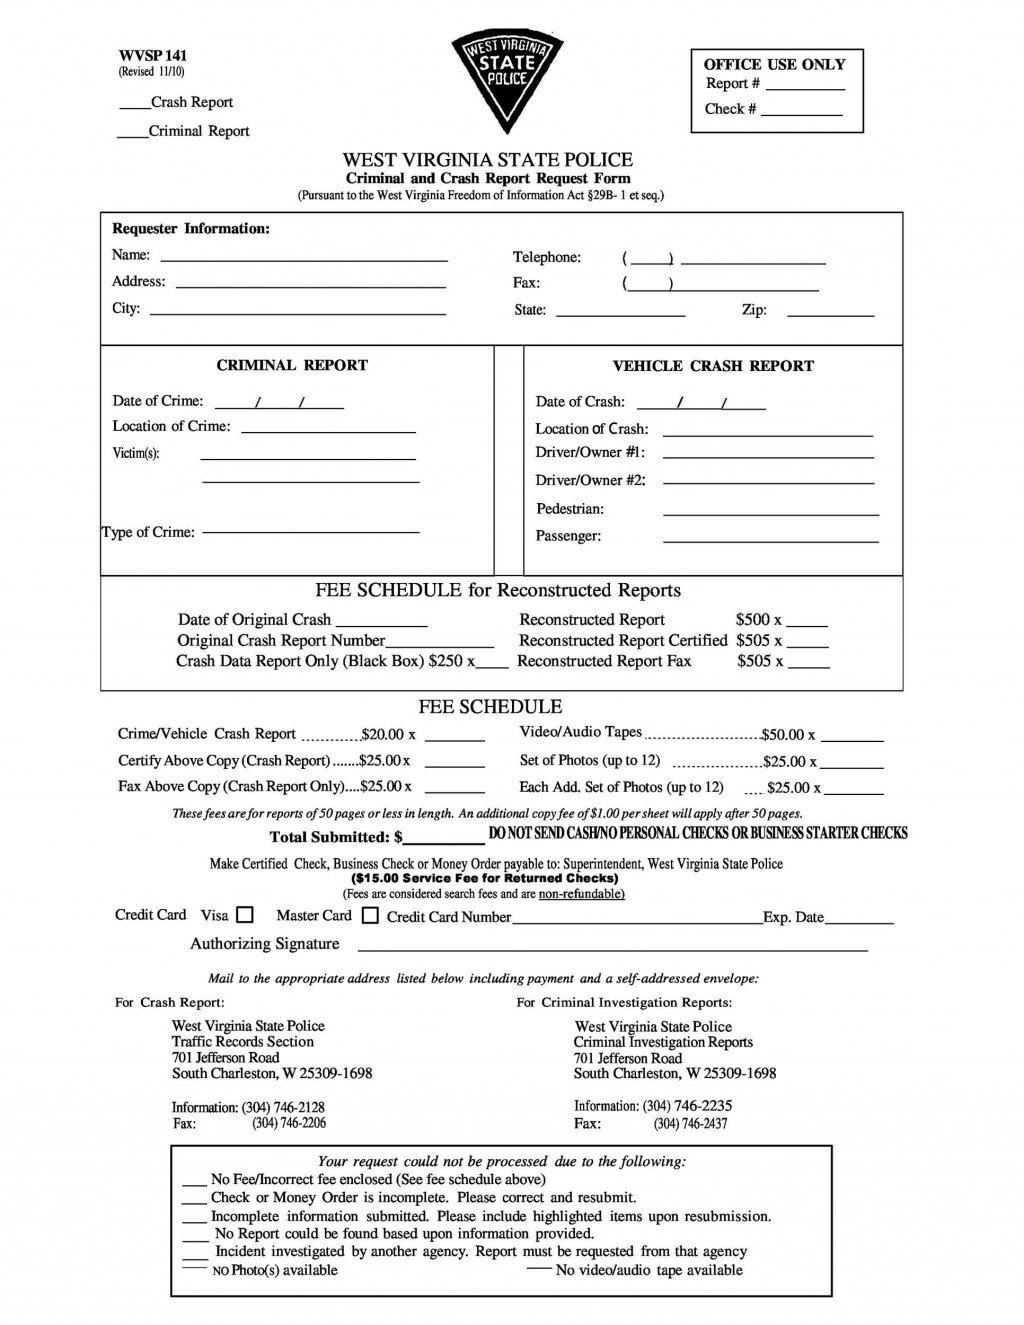 007 Unforgettable Police Report Template Microsoft Word High Definition Large